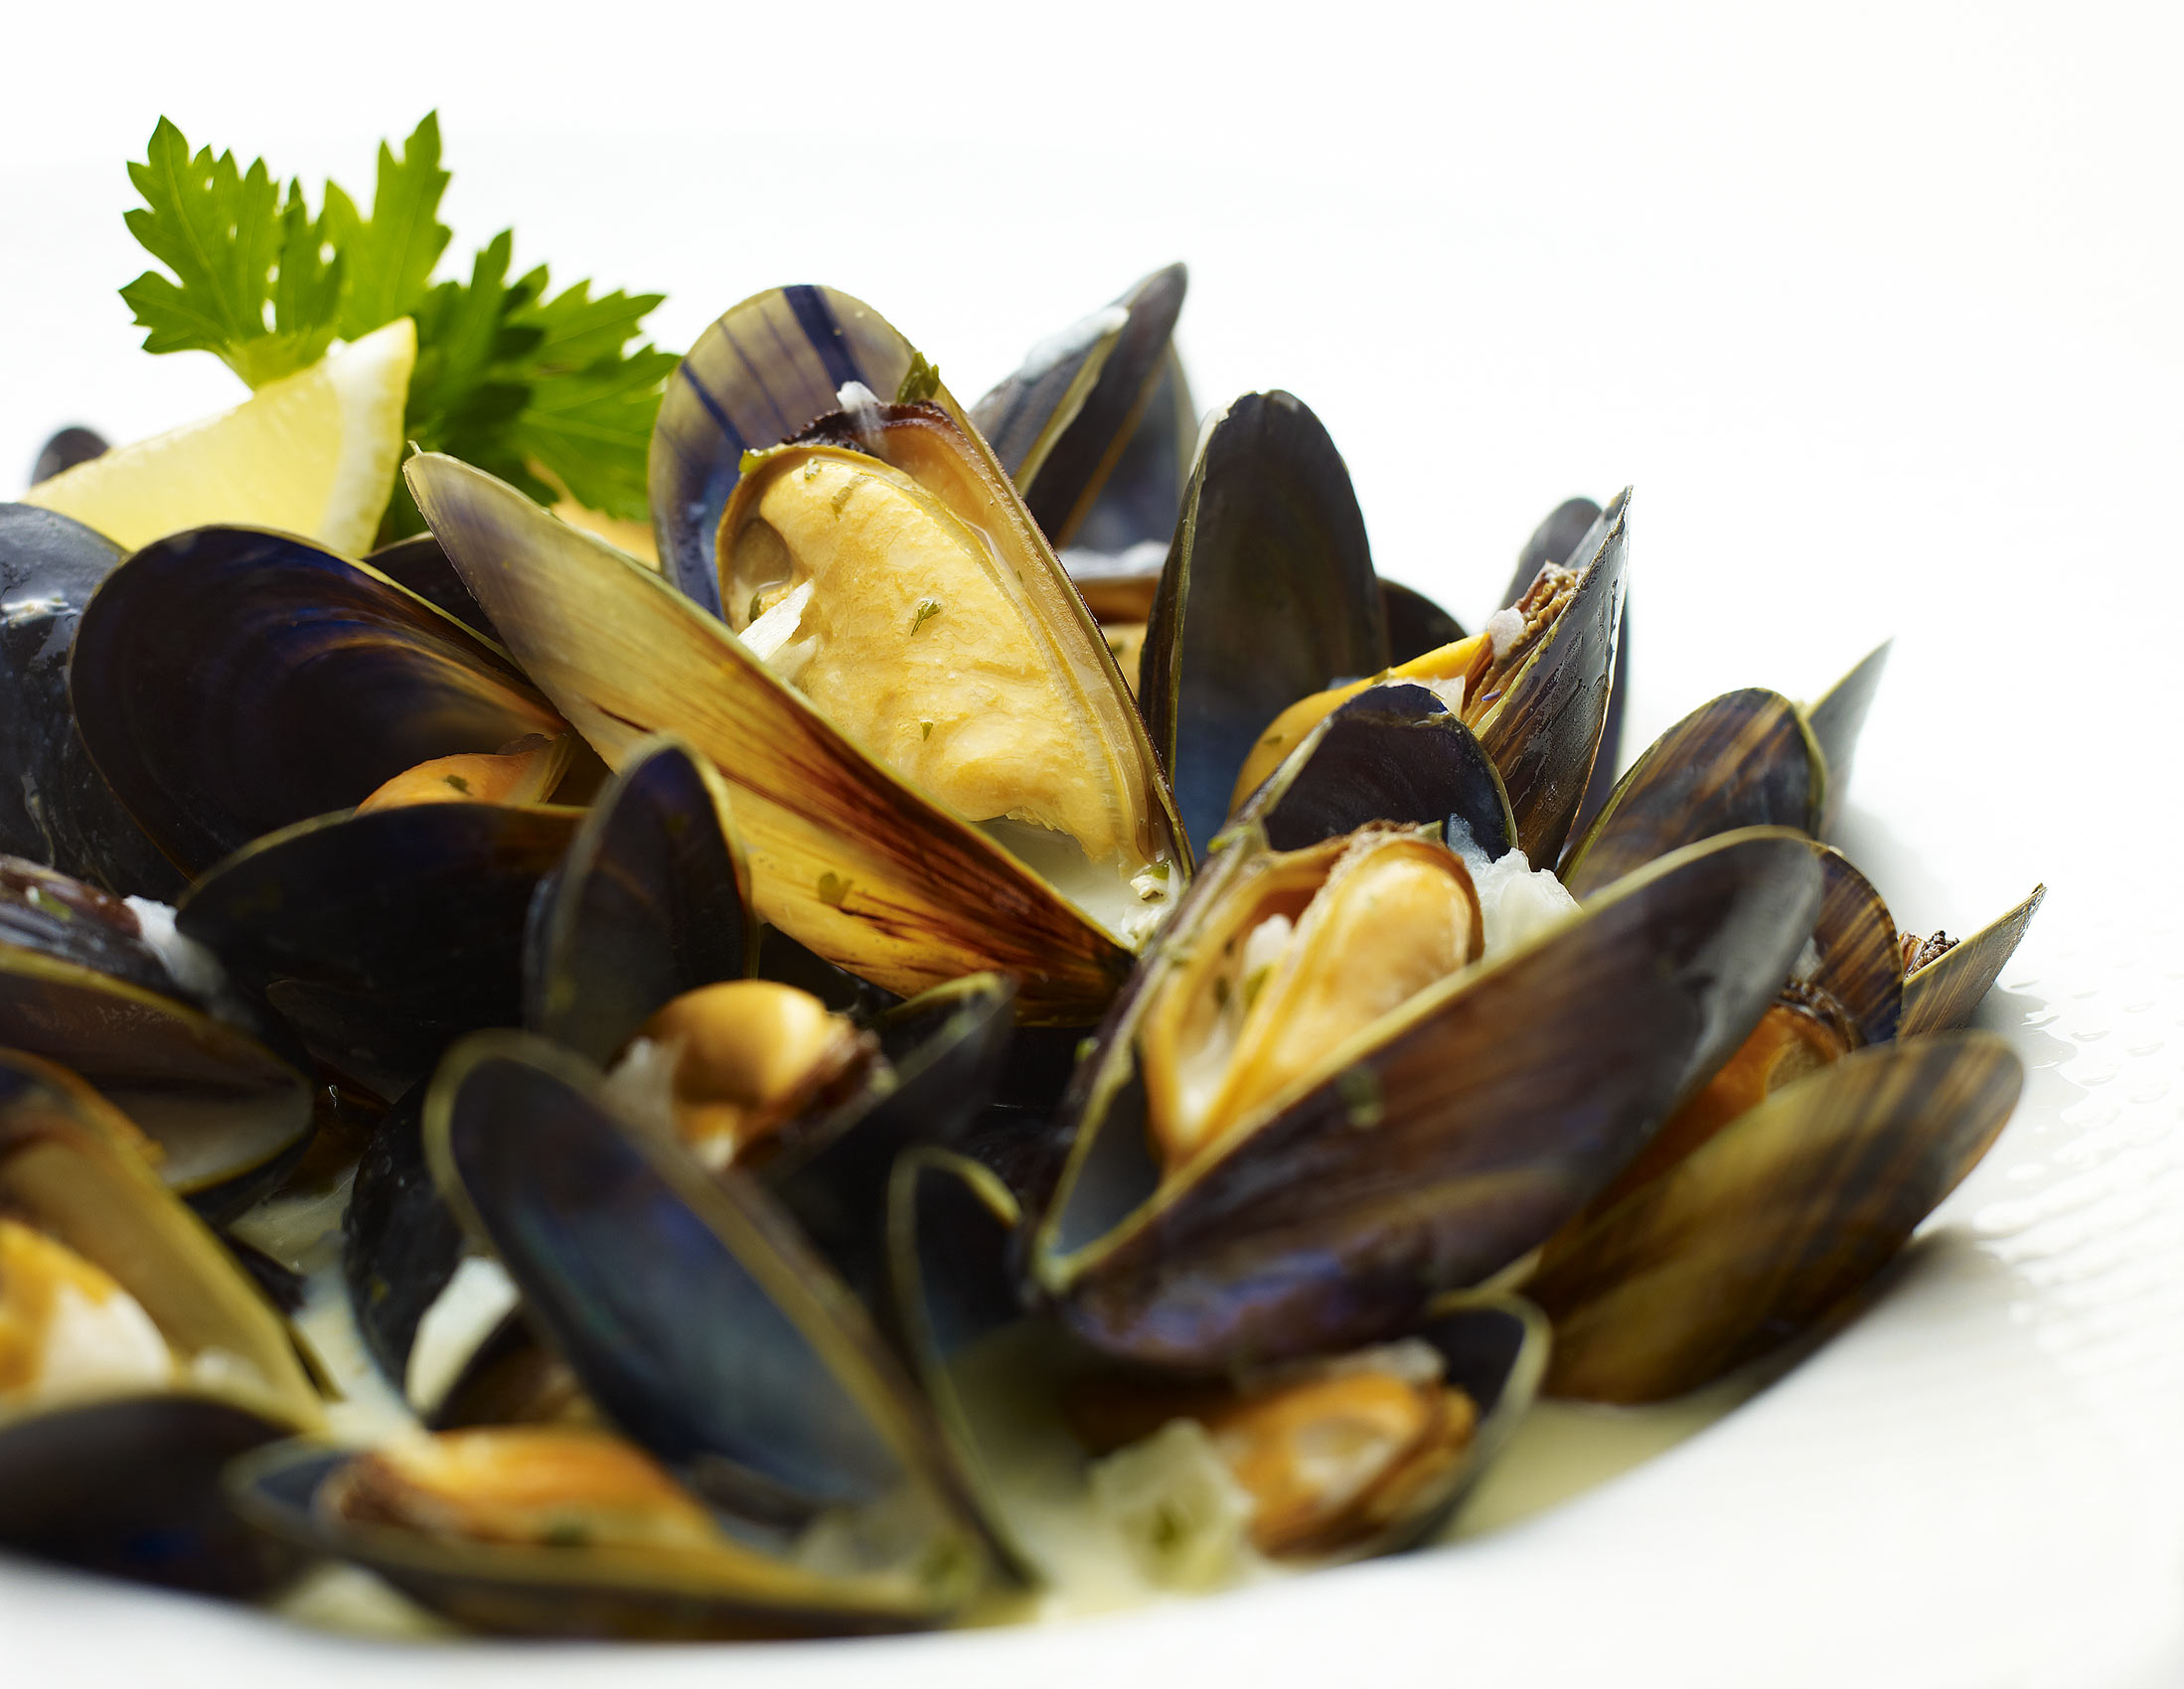 16-food_mussels_tabletable